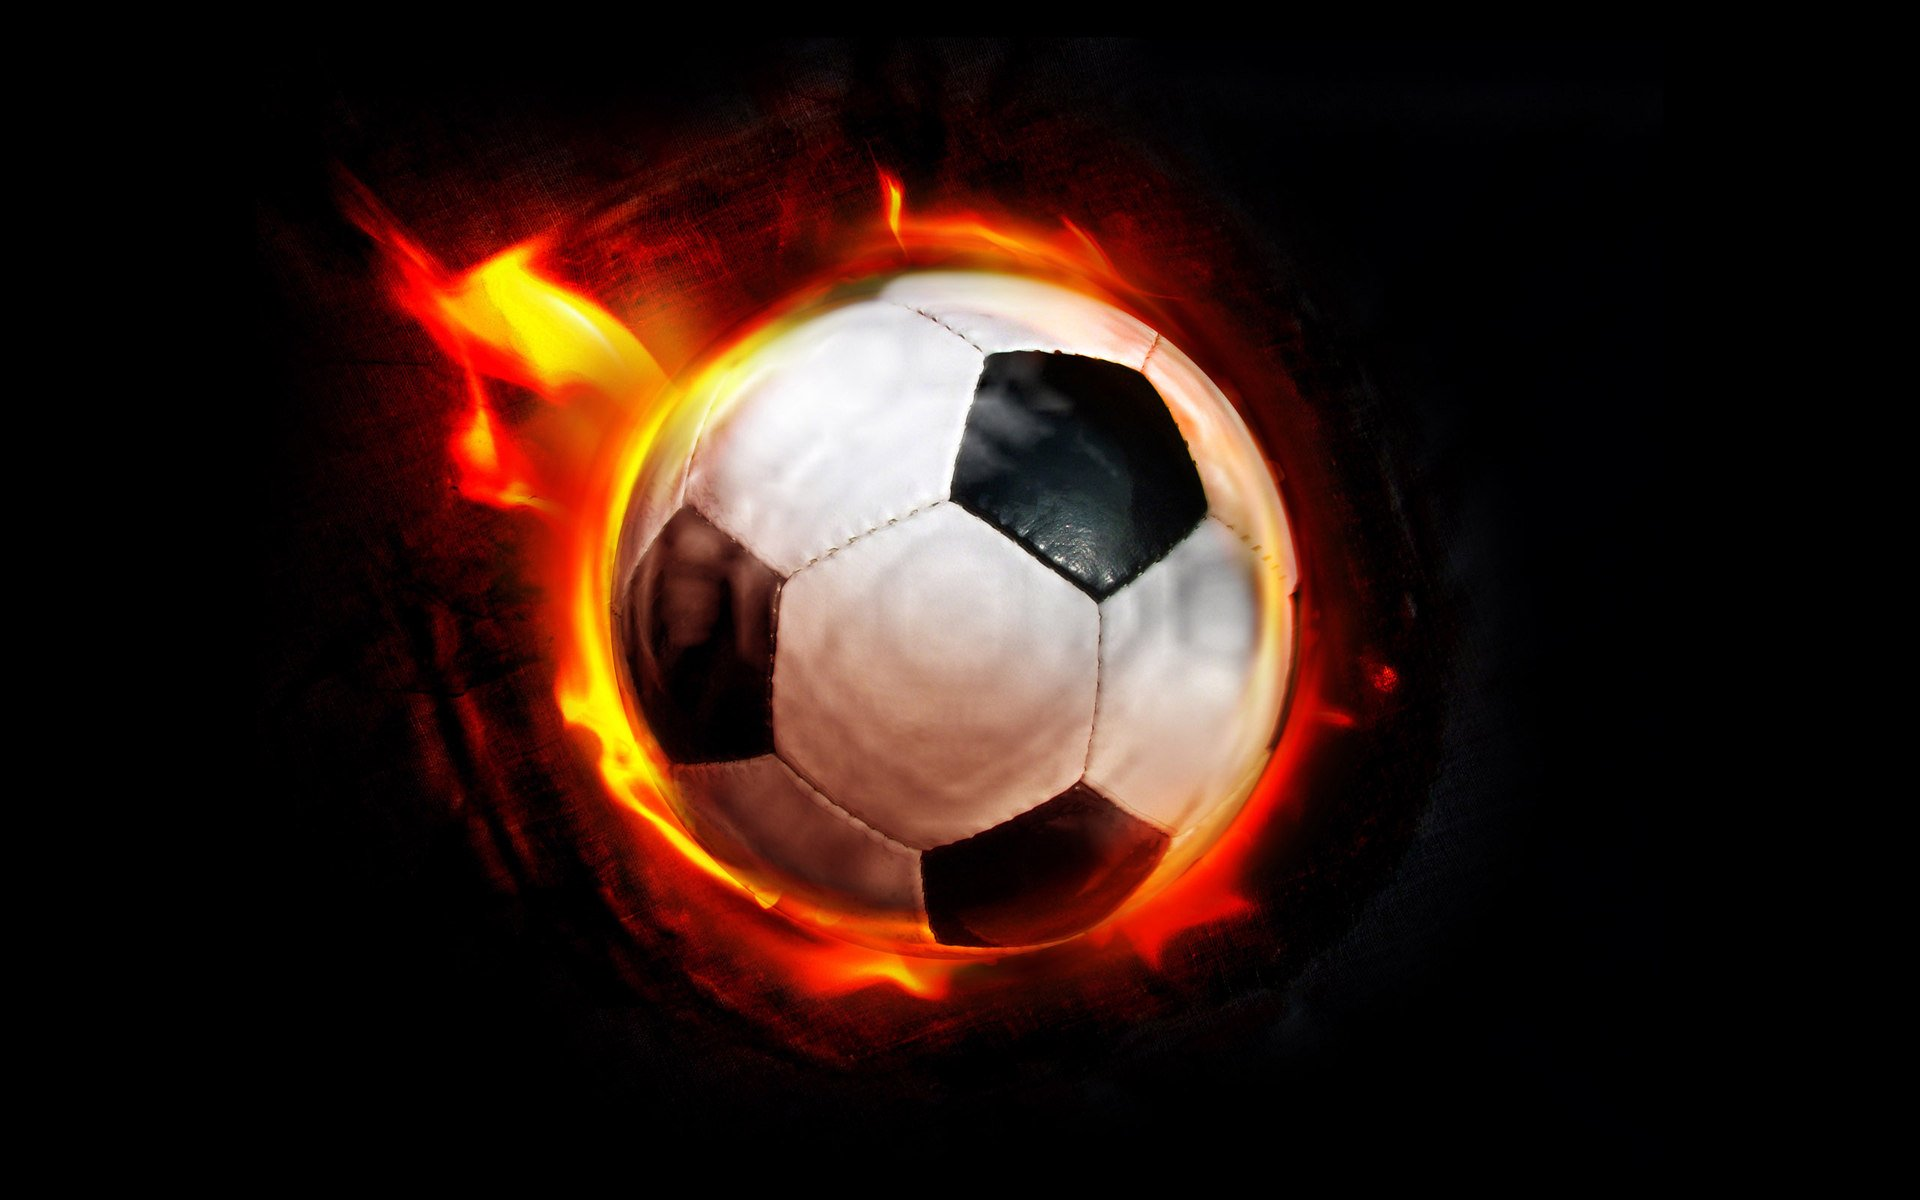 hd soccer 12 wallpaper you are viewing the sports wallpaper named hd 1920x1200